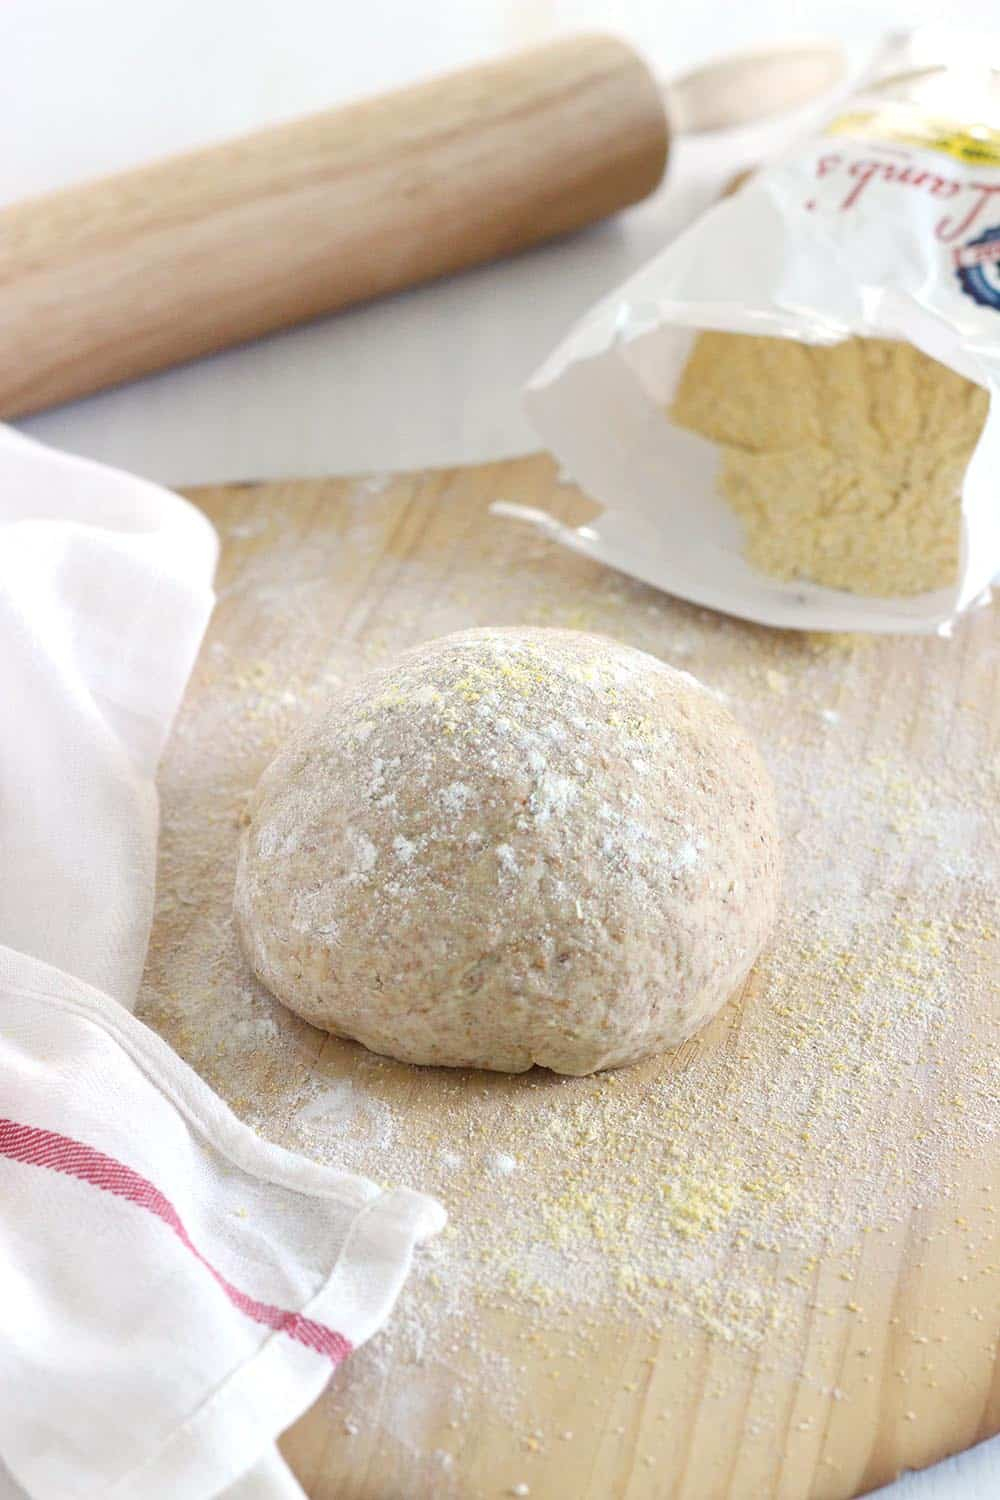 A whole wheat pizza dough recipe that has a hint of salty-sweet and isn't dry or crumbly. Use for pizza, calzones, or flatbreads.